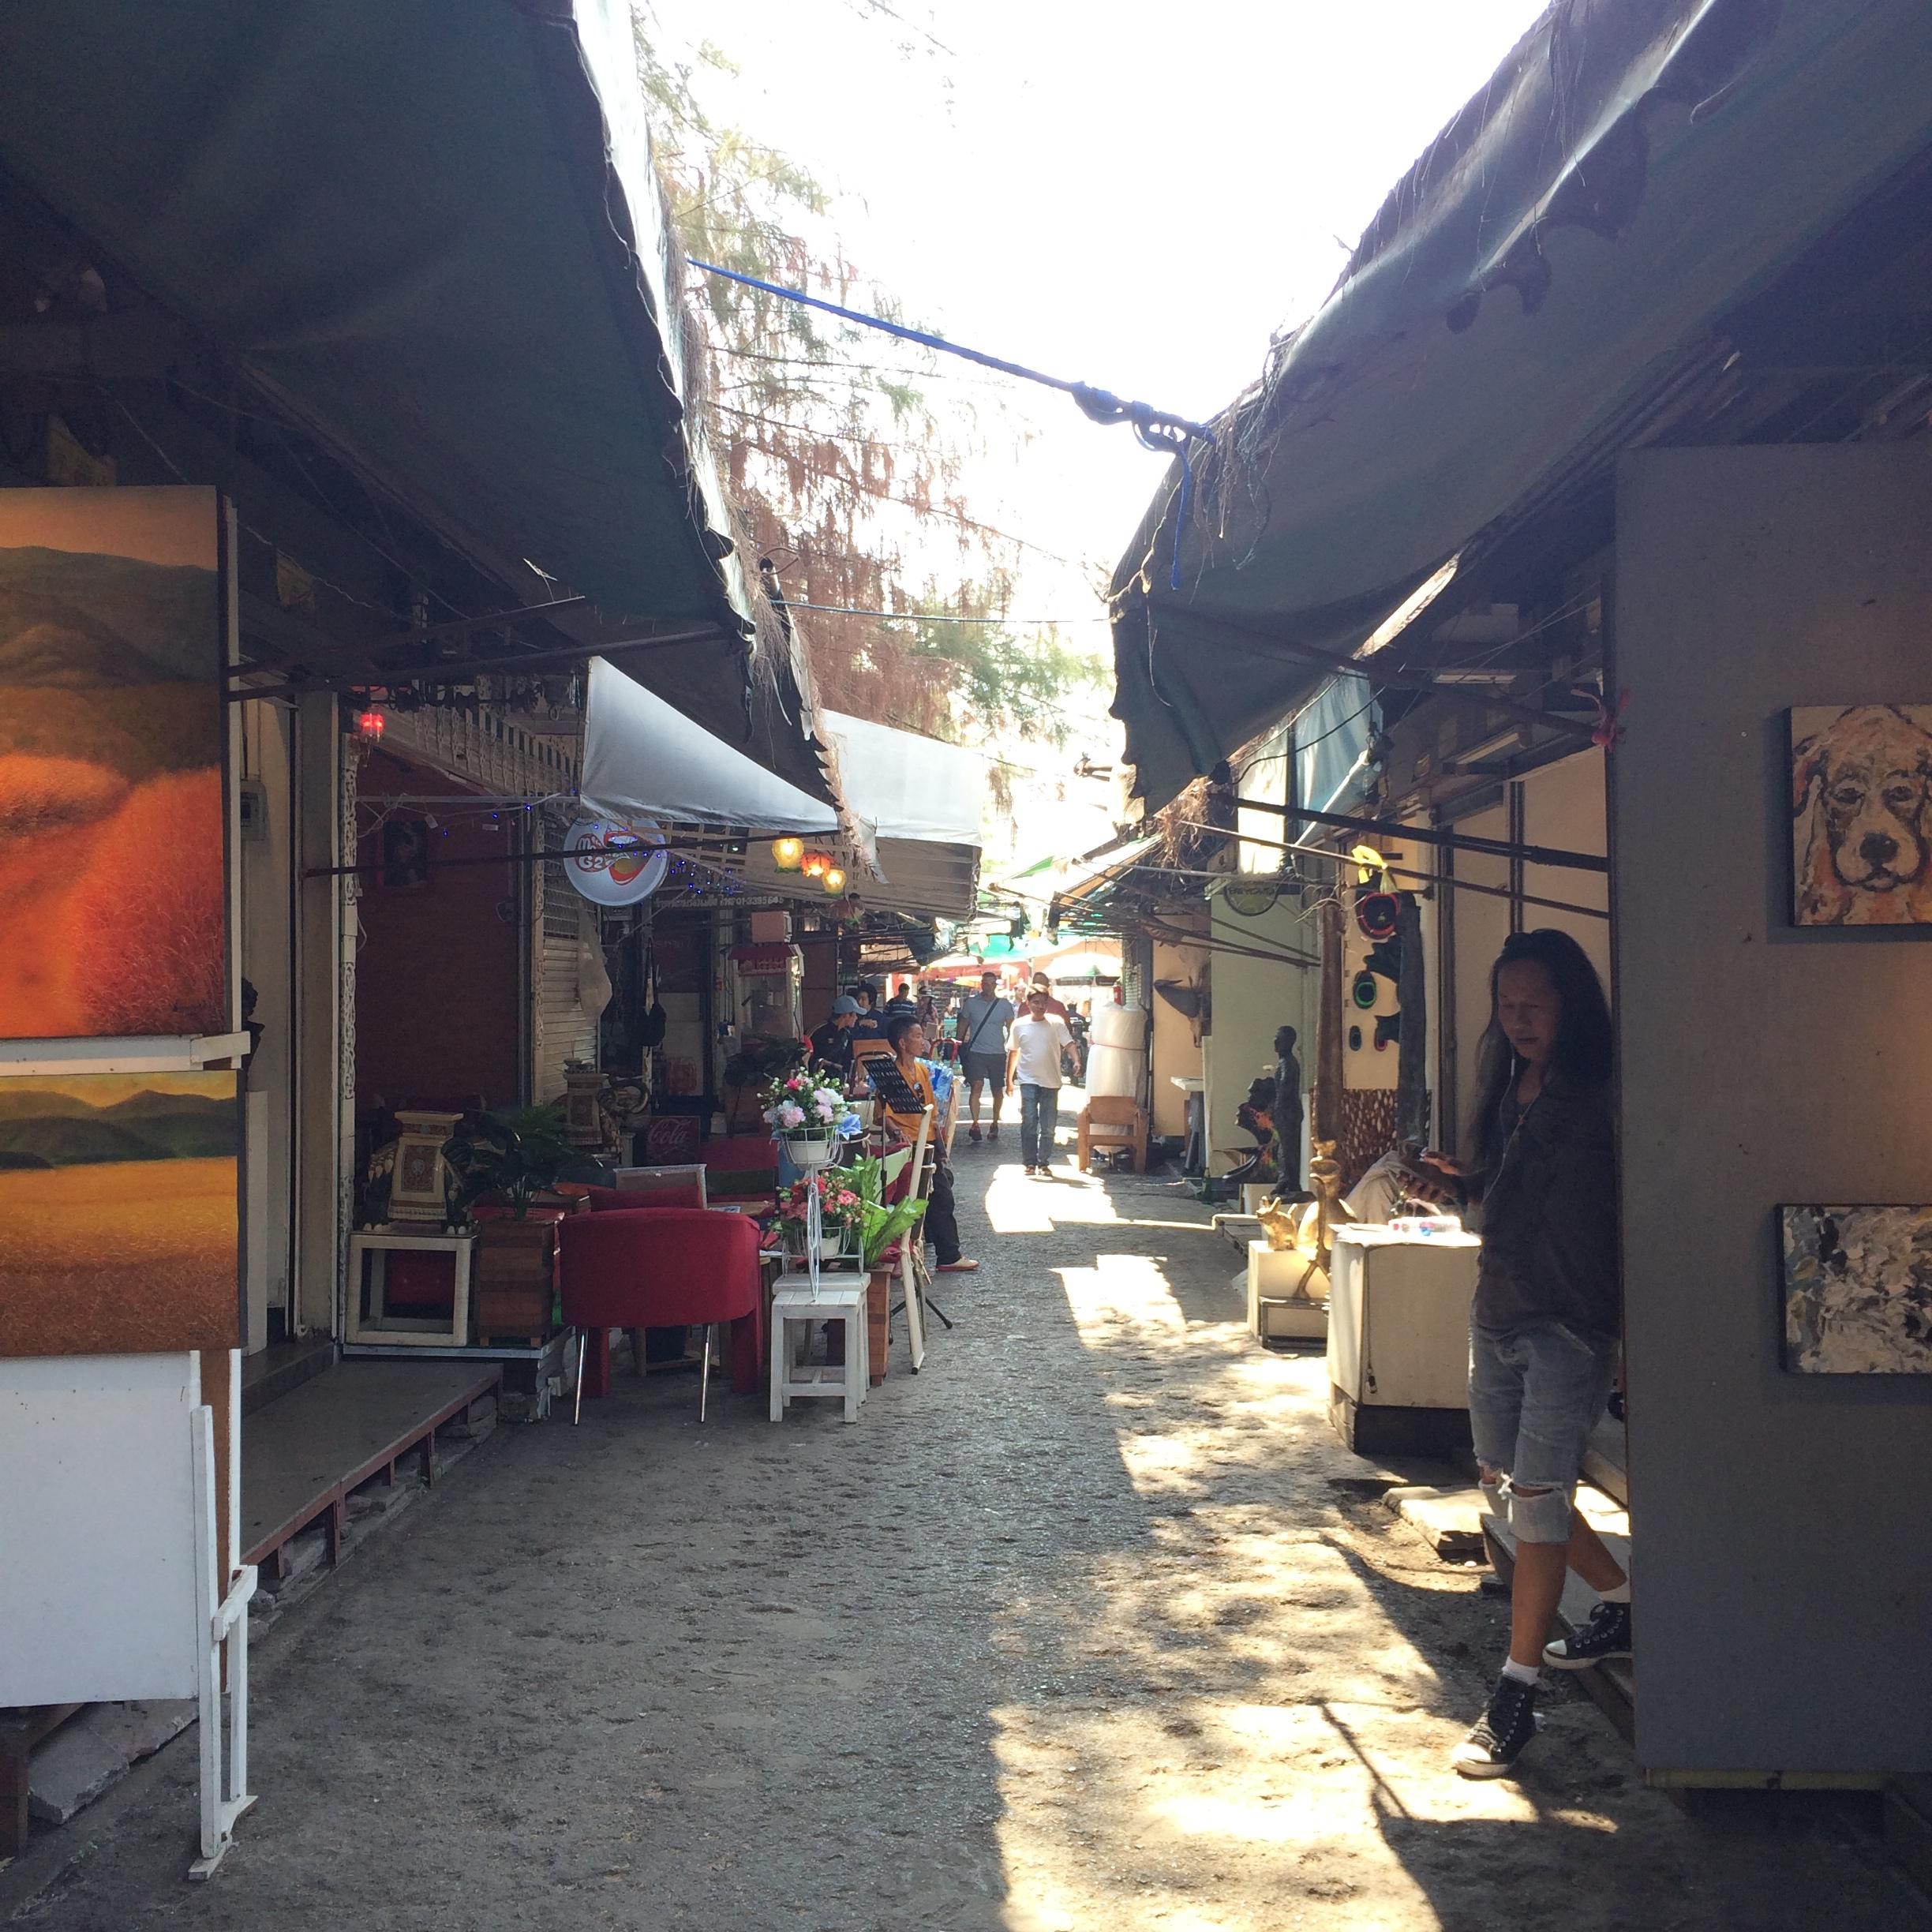 In a maze of shops, you can find art galleries, Thai massages, street food, and more.